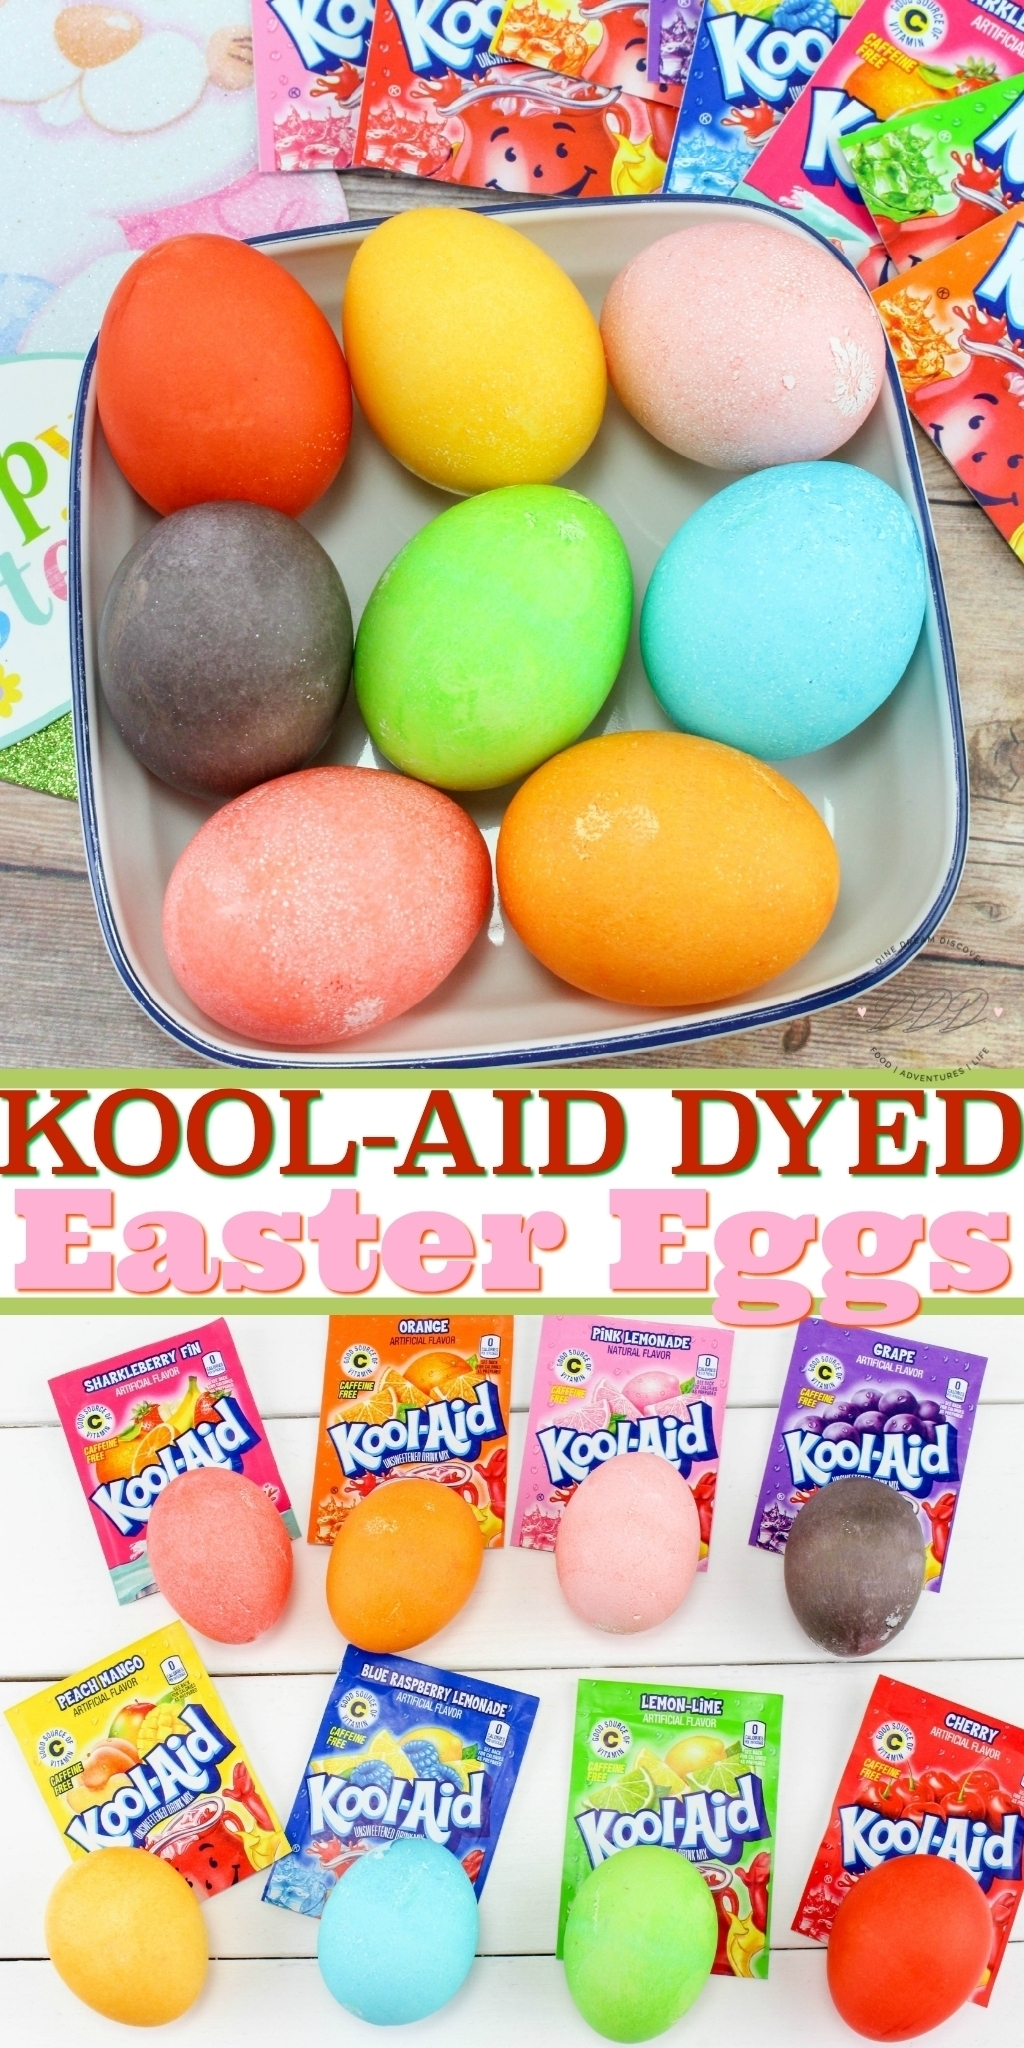 This post explains how easy and inexpensive it is to dye Easter eggs with Kool-Aid. It's so much more fun than a regular egg dye kit.